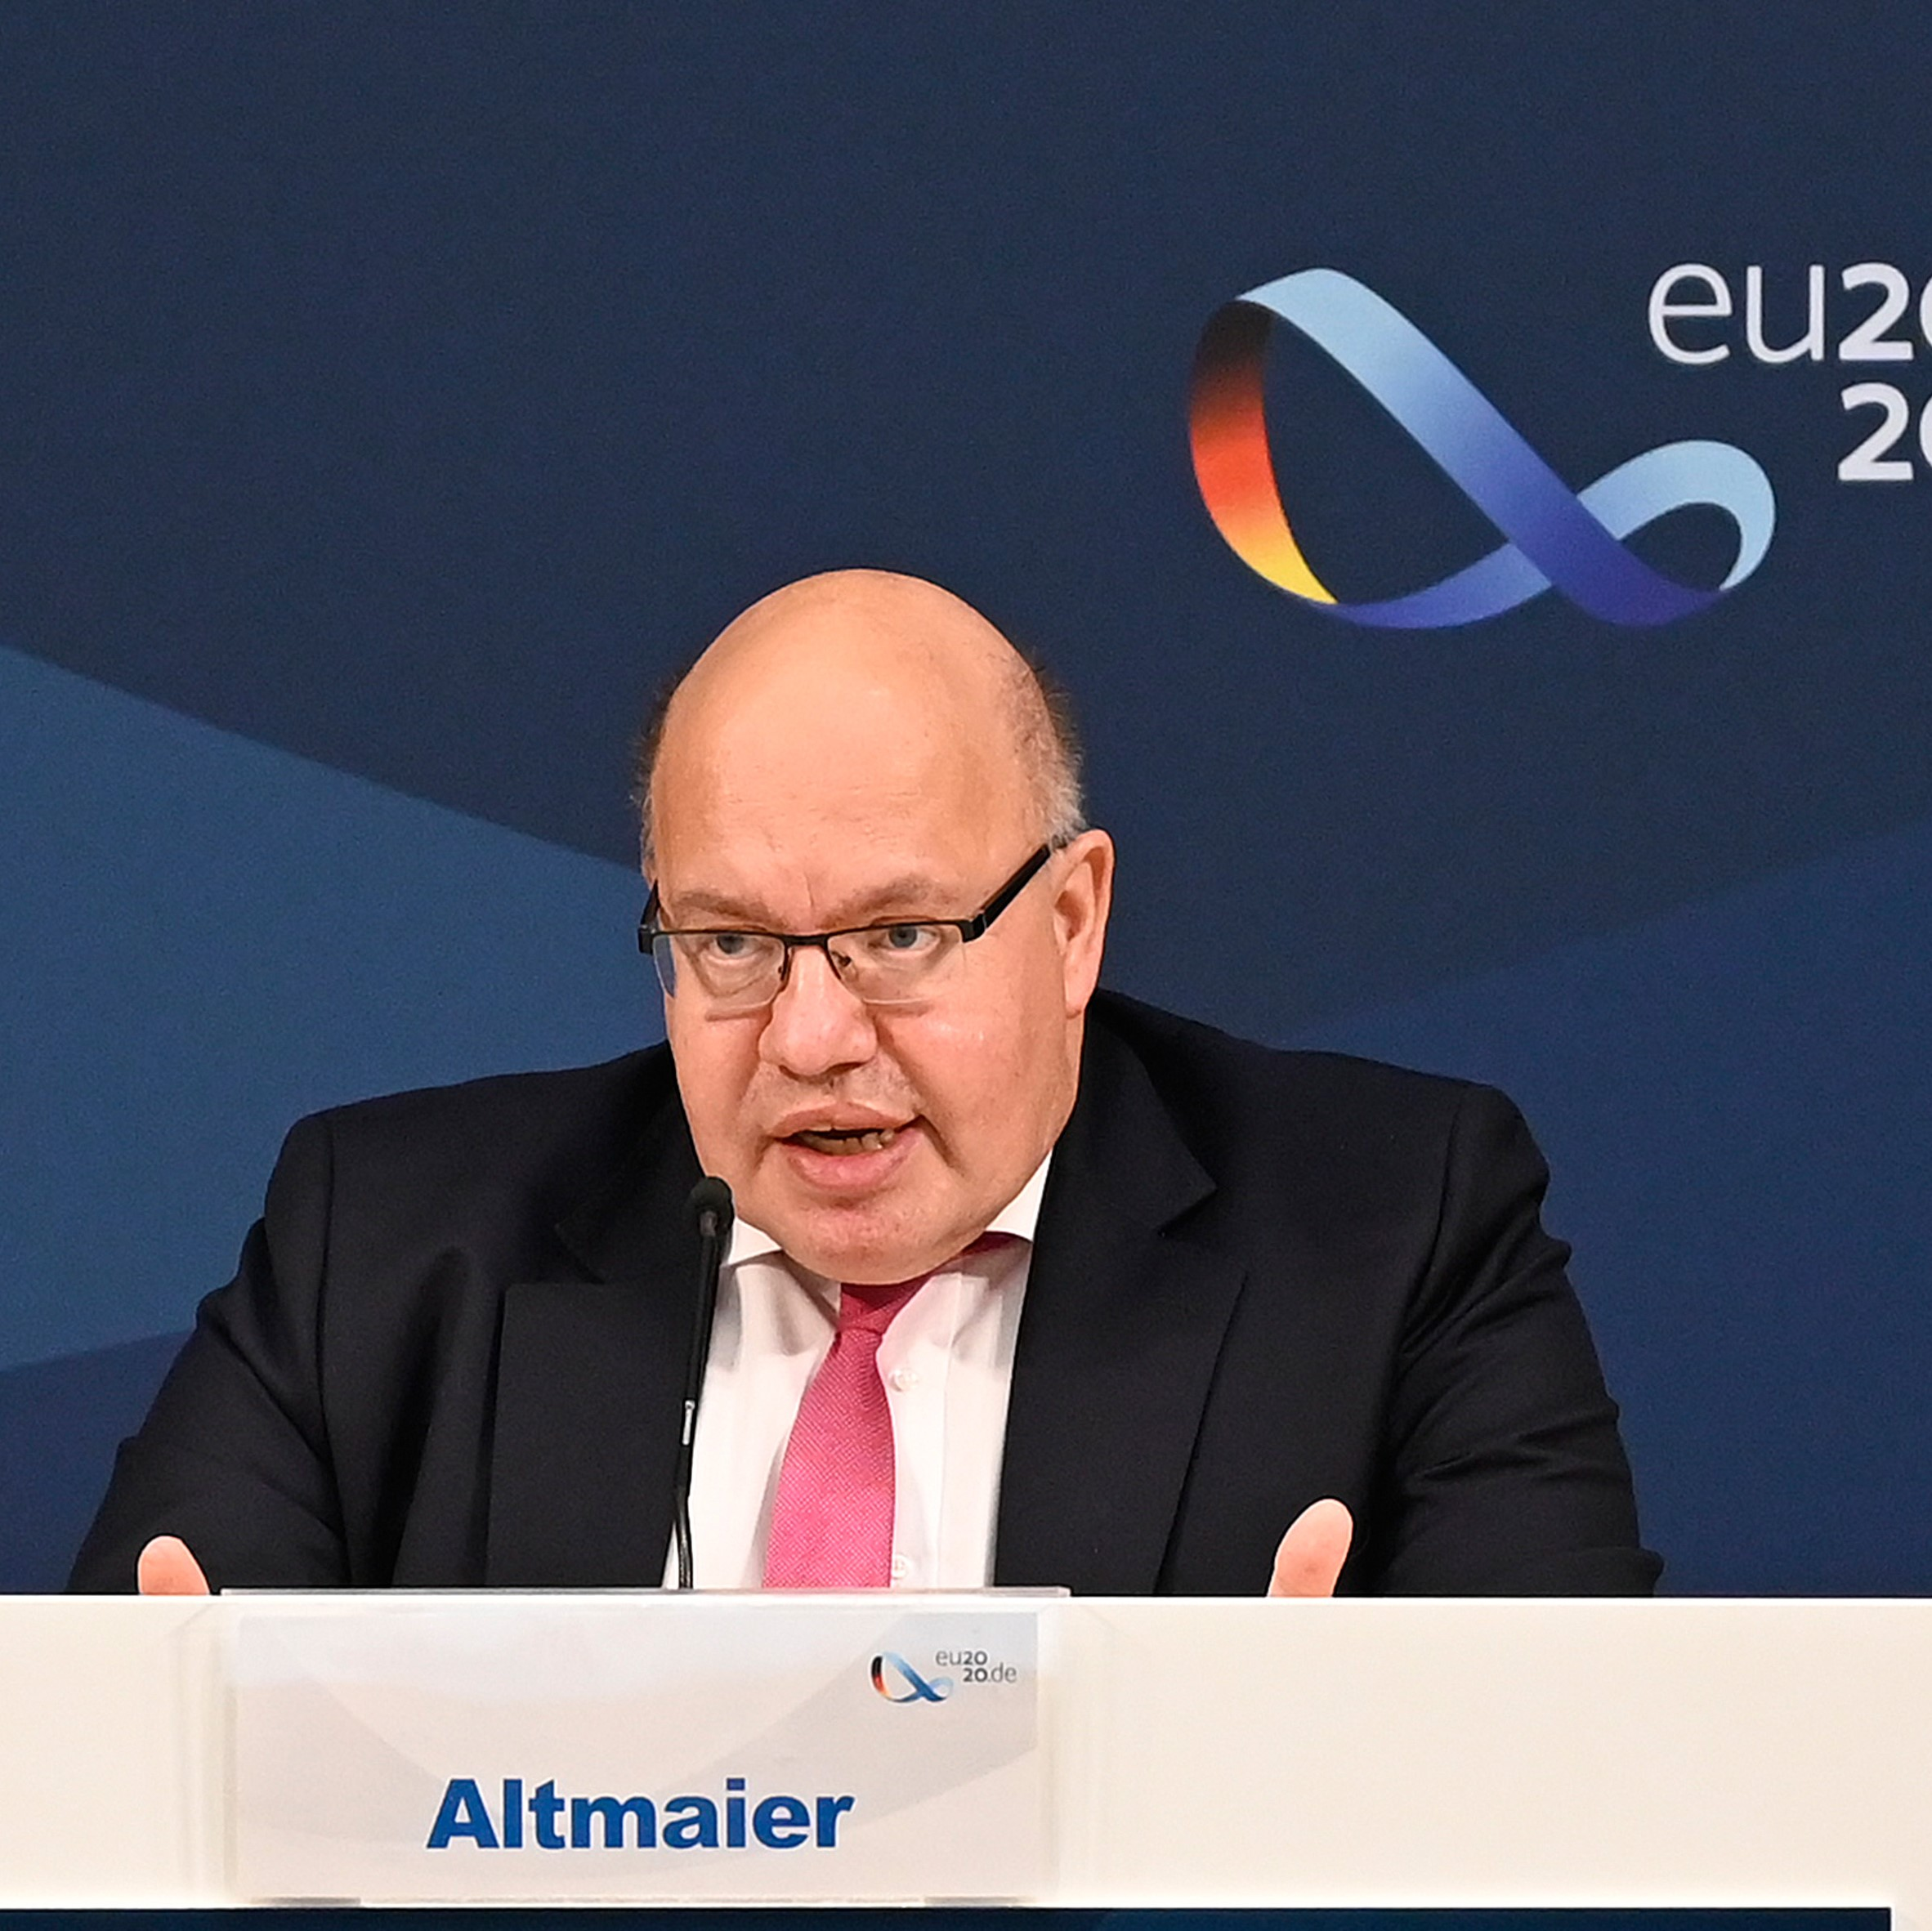 Peter Altmaier, German Federal Minister for Economic Affairs and Energy